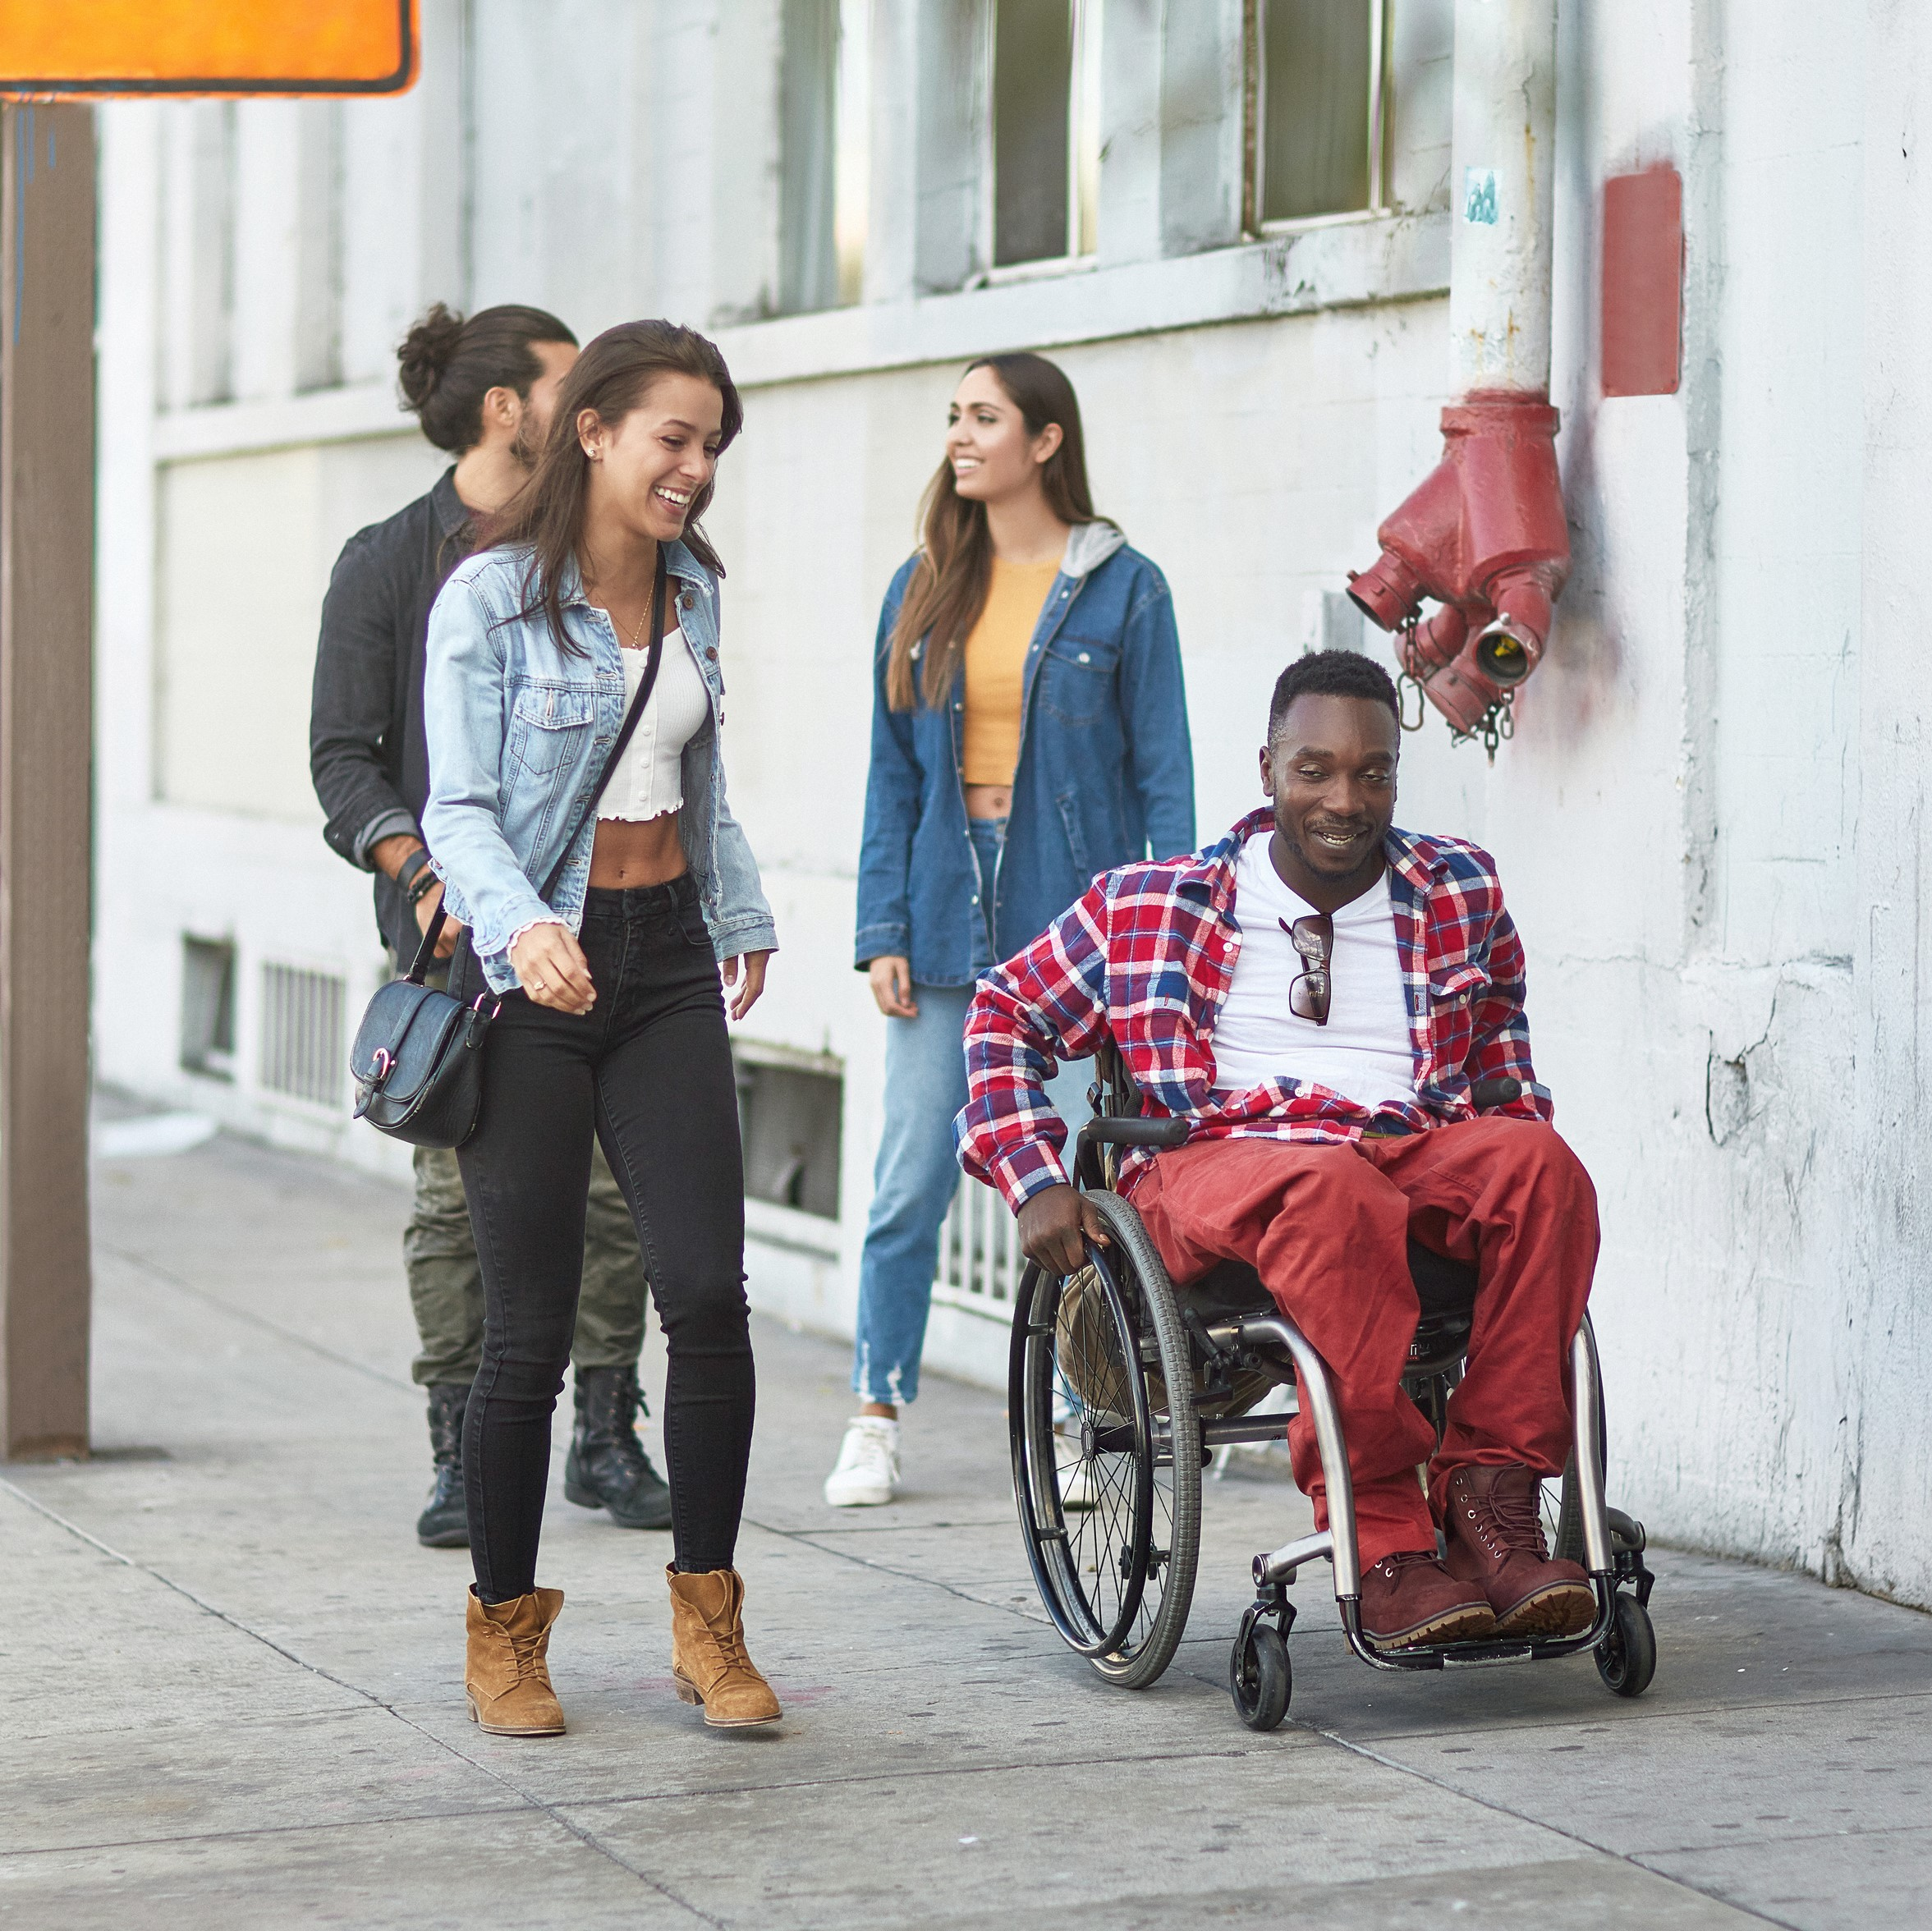 Man in a wheelchair traveling on a sidewalk next to friends who are walking. All are smiling.